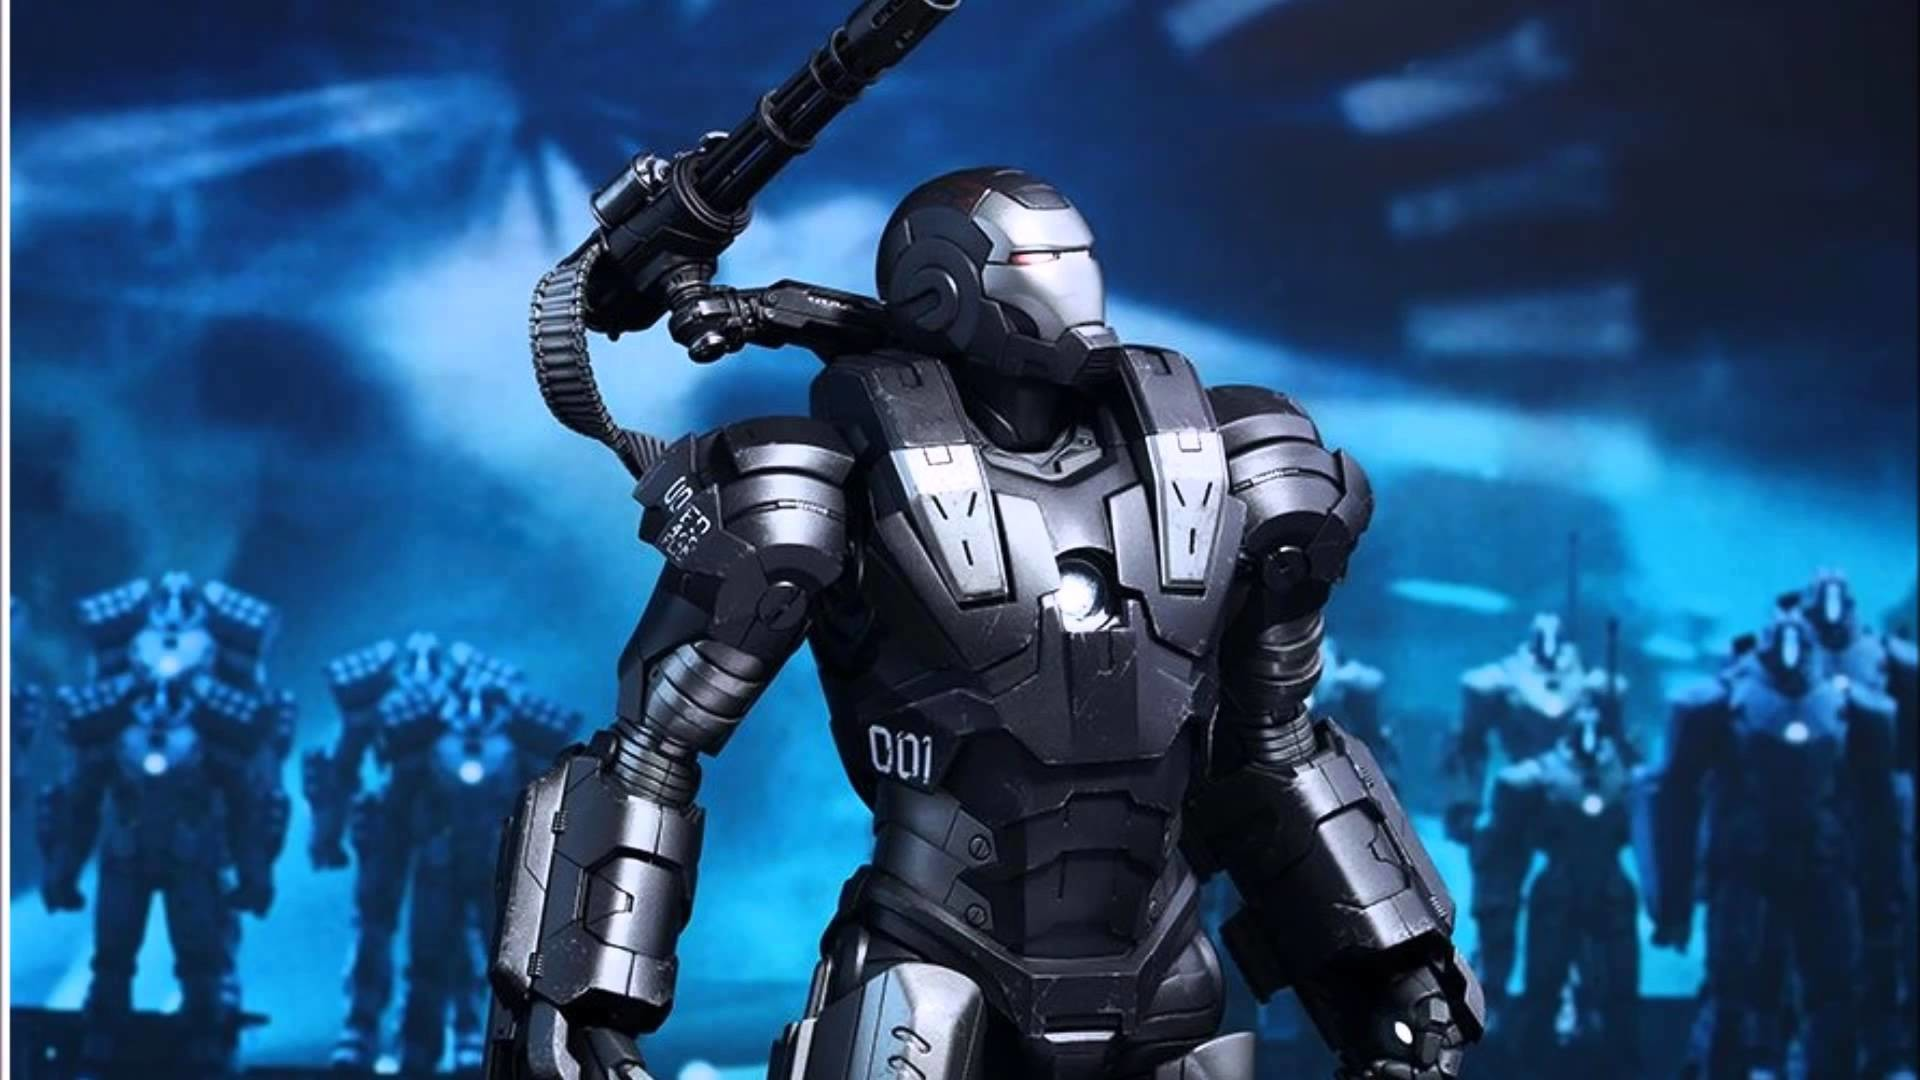 Preview Hot Toys Iron Man 2 War Machine Mk 1 Diecast 1/6th Collectible  Figure Preview MMS 331 D13 – YouTube